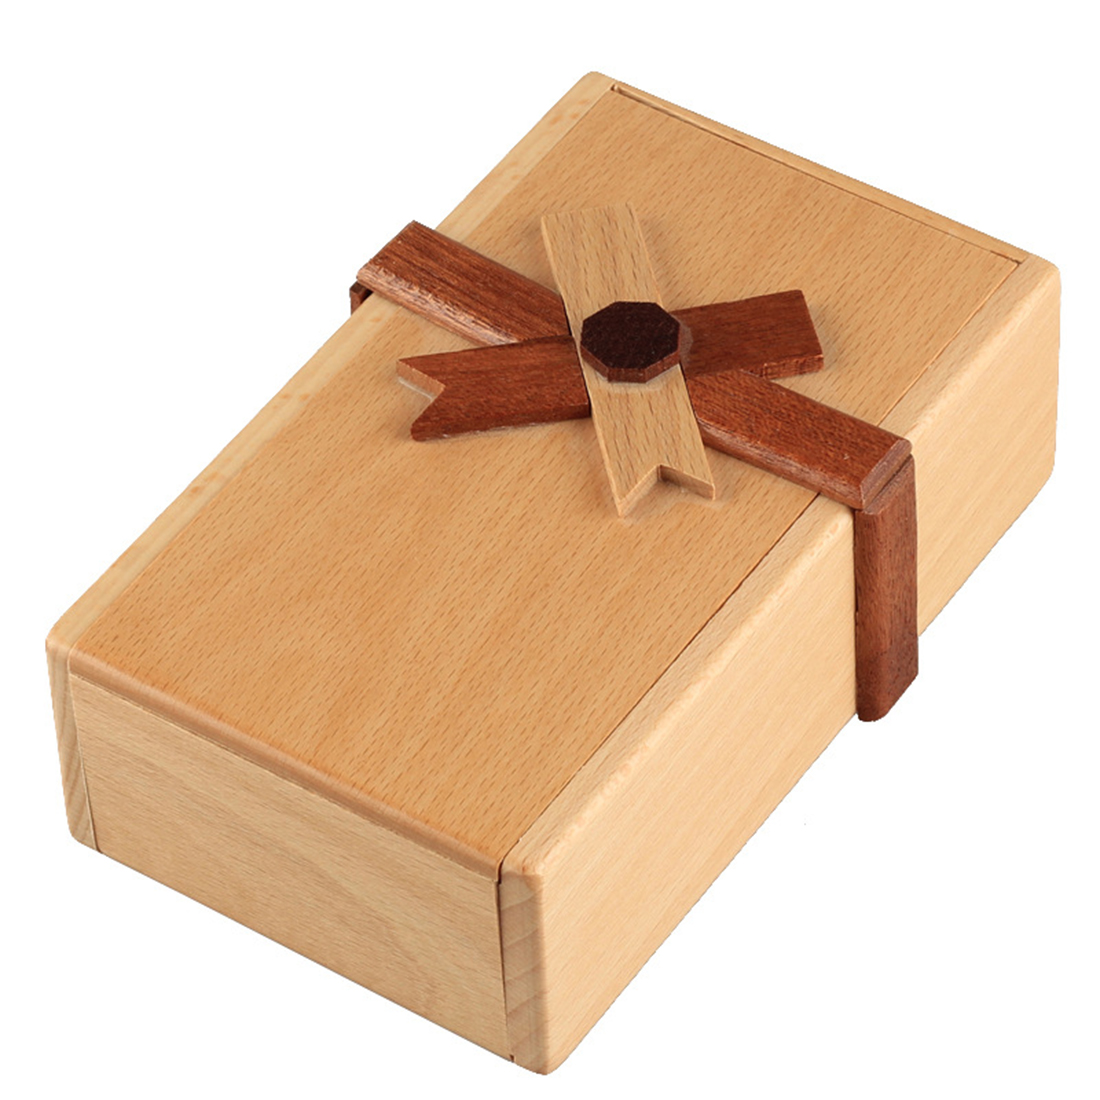 Puzzle Secret Box Intelligent Mind Wooden Magic Box Teaser Game Adults Gift Creative Educational Toy Montessori Ming Lock Lu Ban